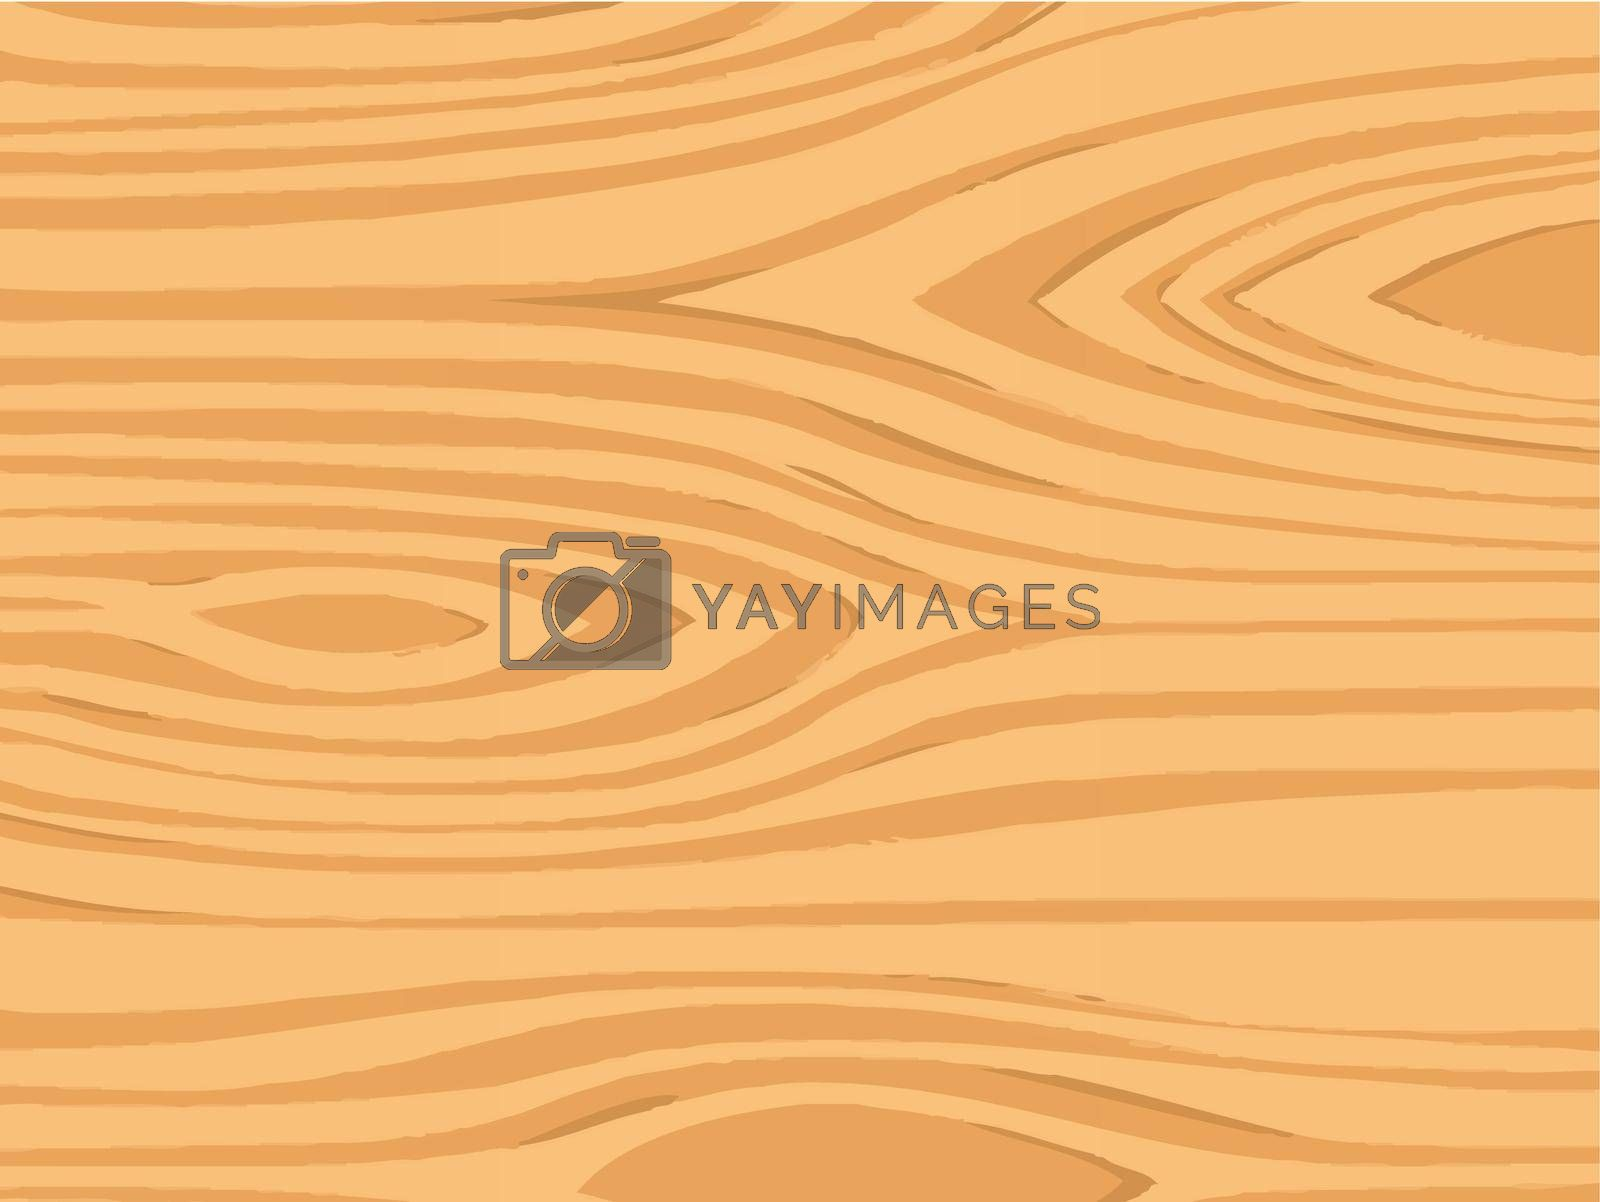 Royalty free image of Wood texture by iimages